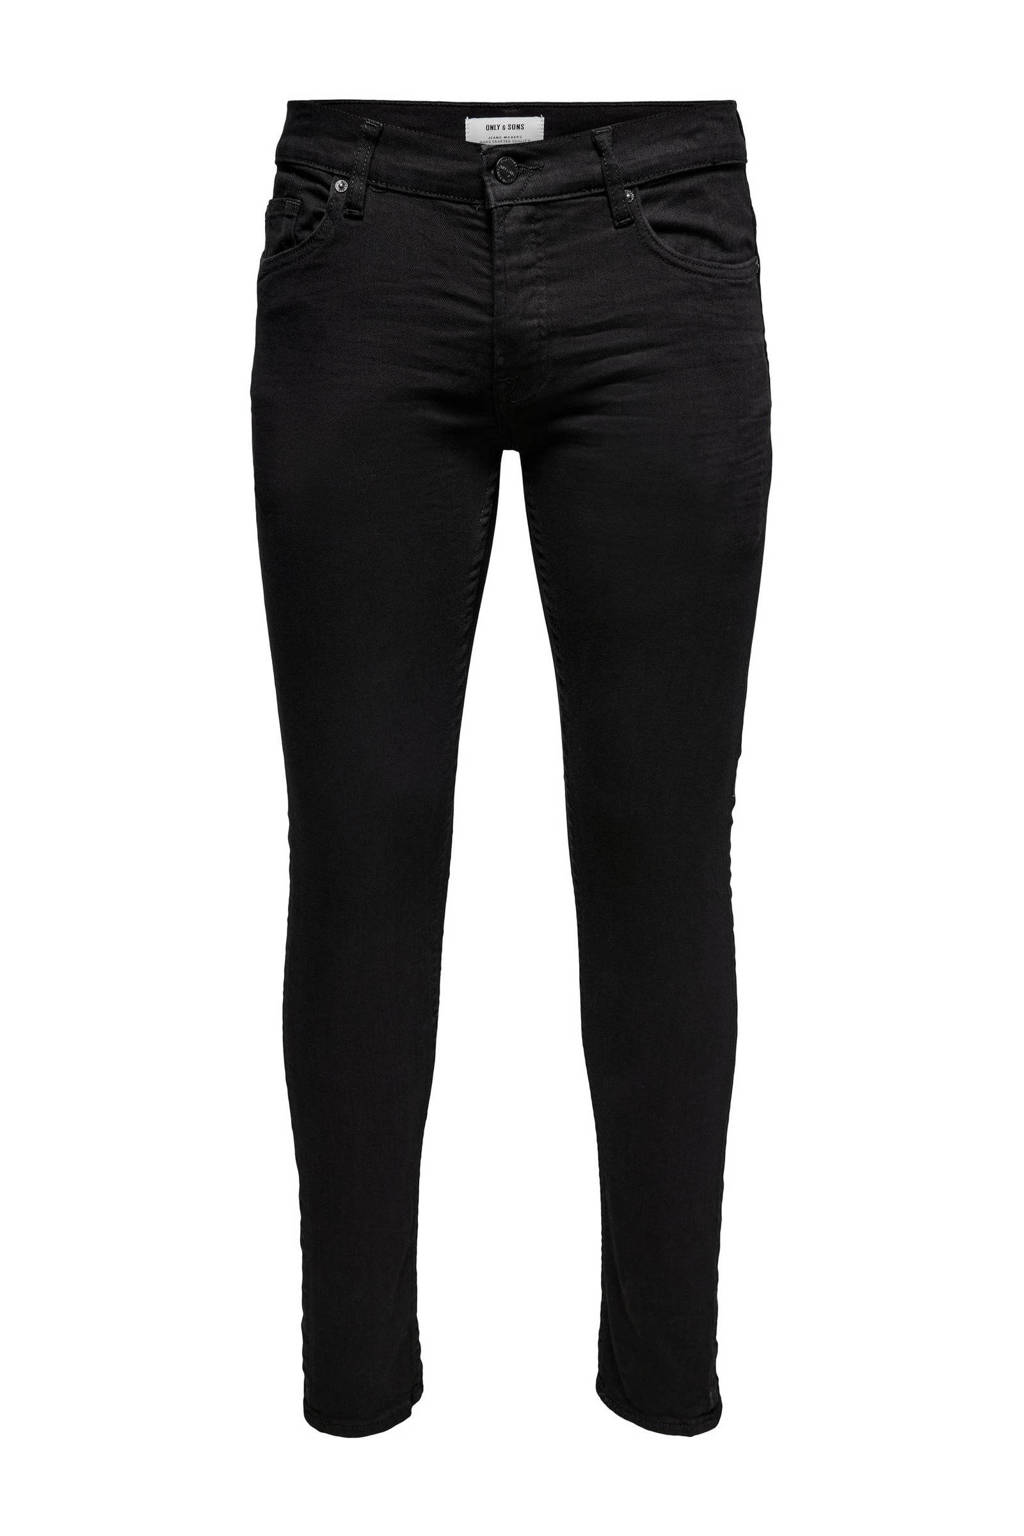 Only & Sons  slim slim fit jeans, Zwart